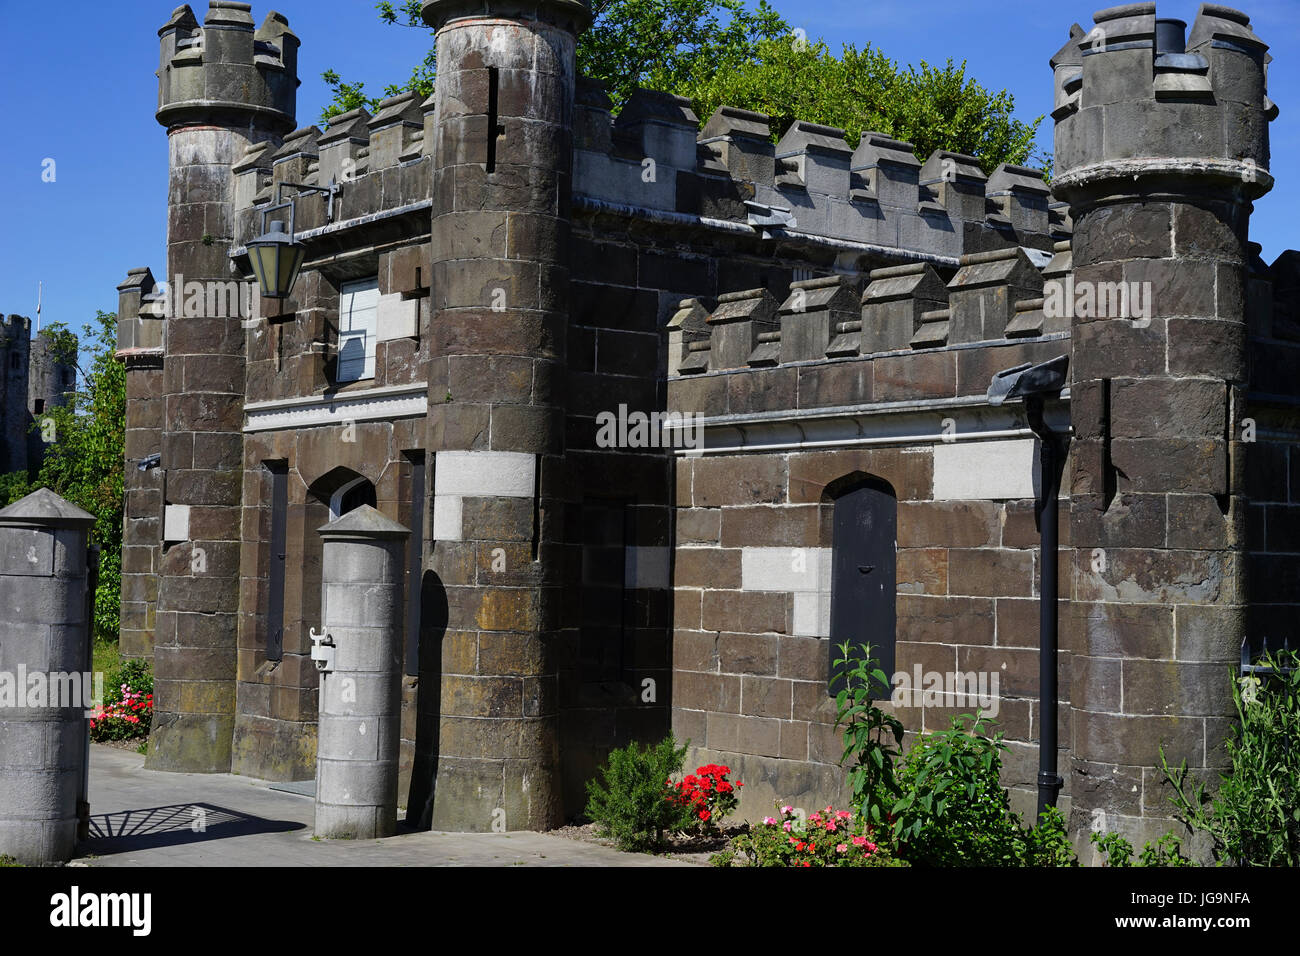 The Toll Keepers House on the Conwy suspension bridge at Conwy, Gwynedd, North Wales, UK. Stock Photo